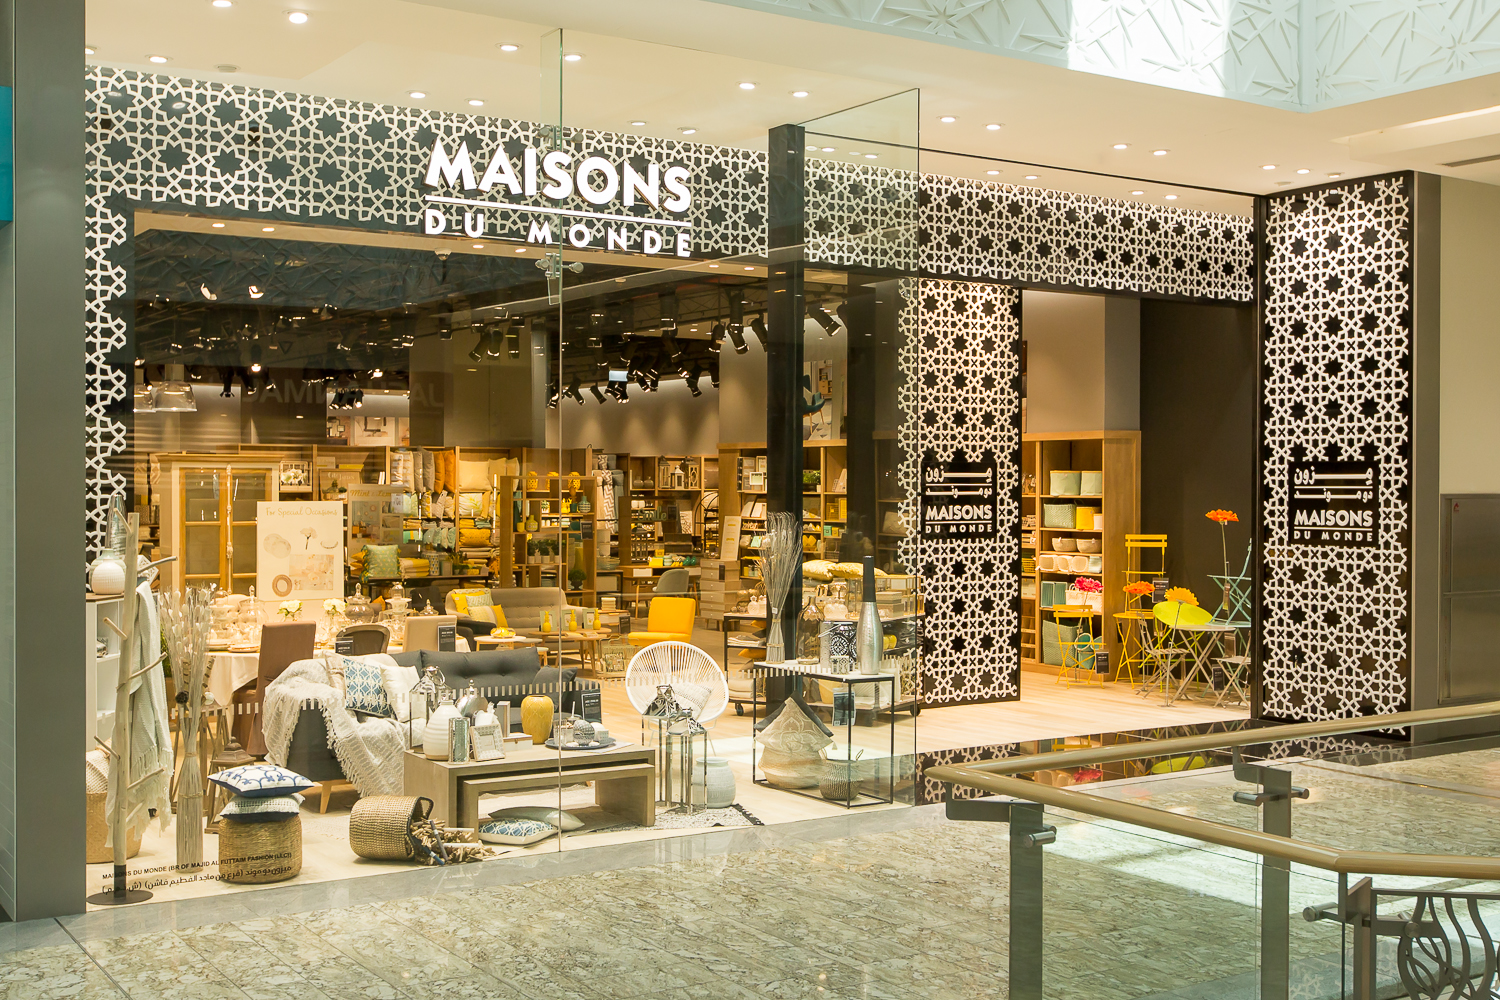 Majid al futtaim fashion enters homeware space with for Maison du monde beaugrenelle